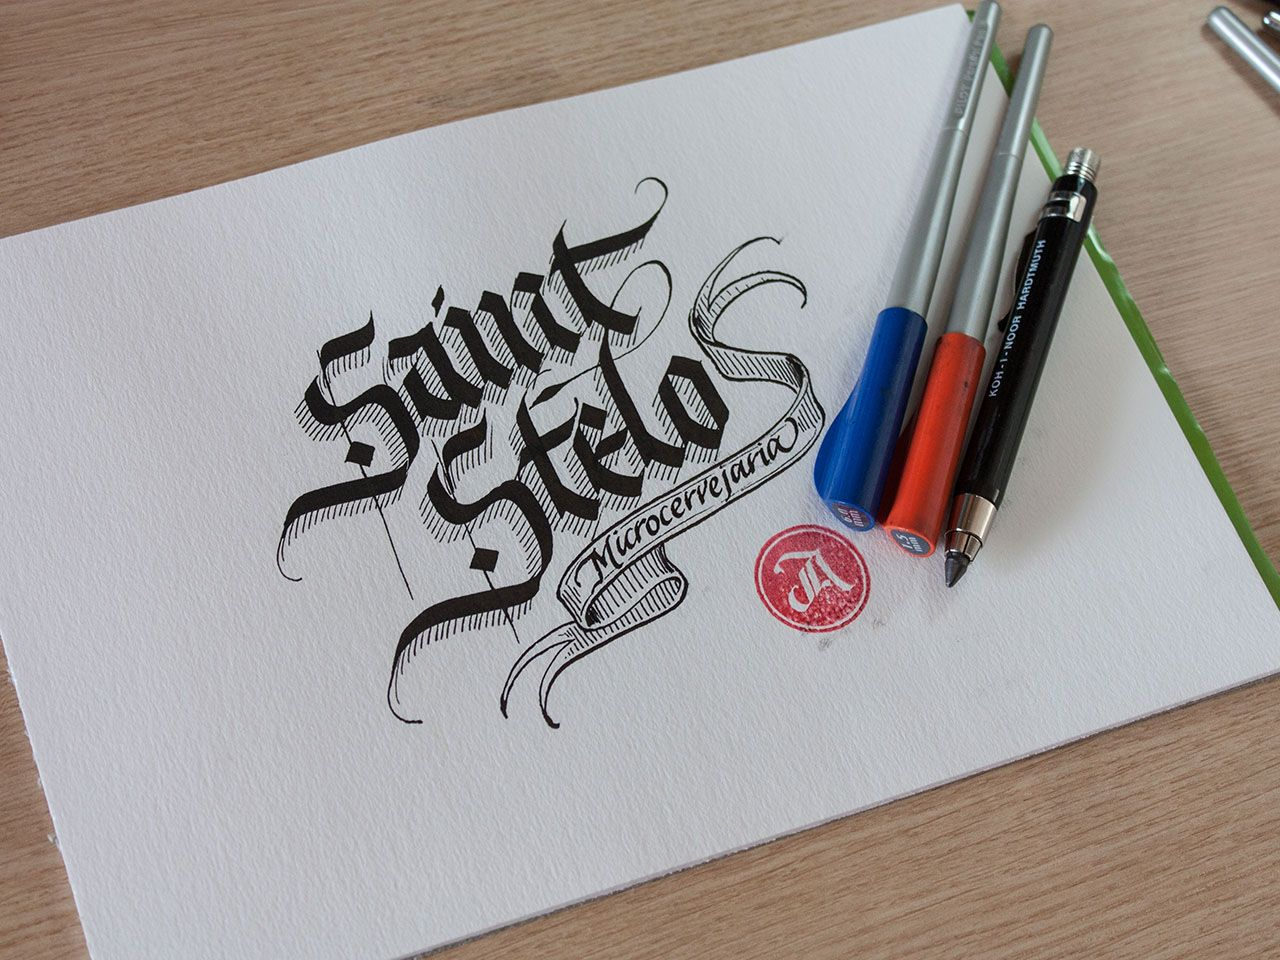 A collect of sketches and logos I created in 2013.